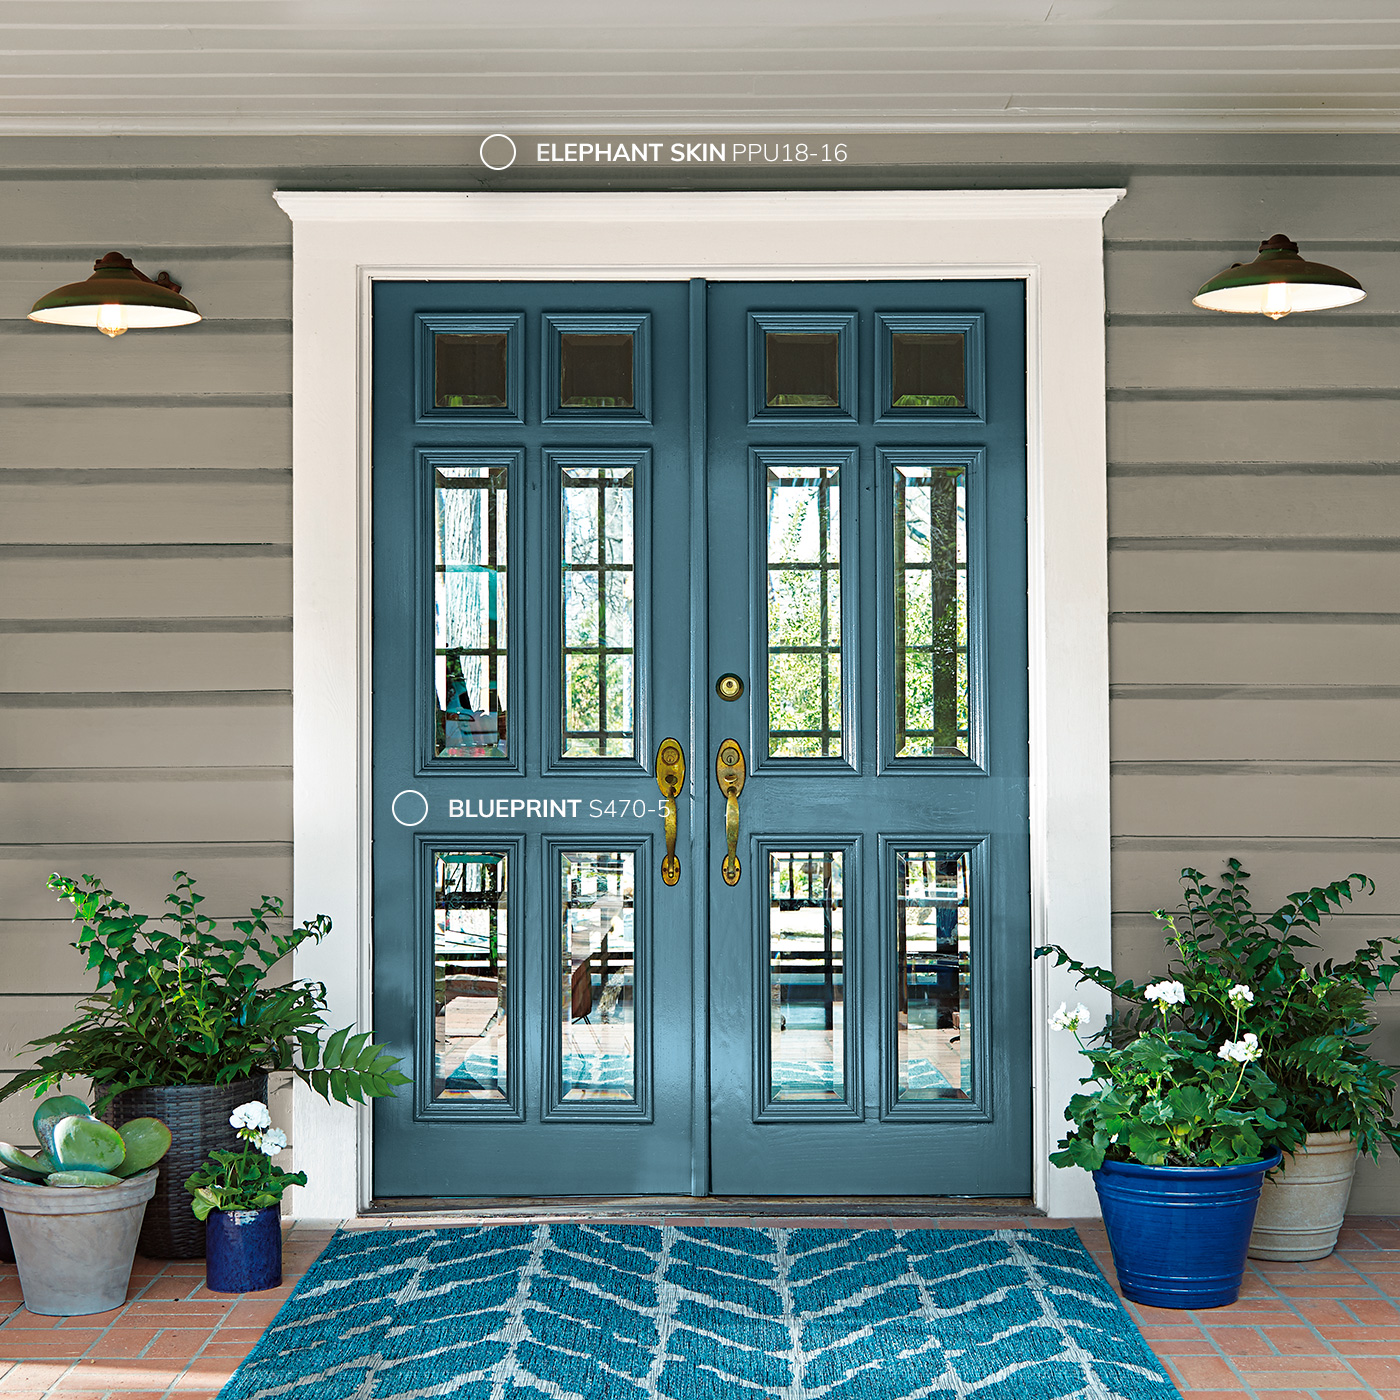 Down to earth curated color palette 2019 color trends - Trending exterior house colors 2017 ...